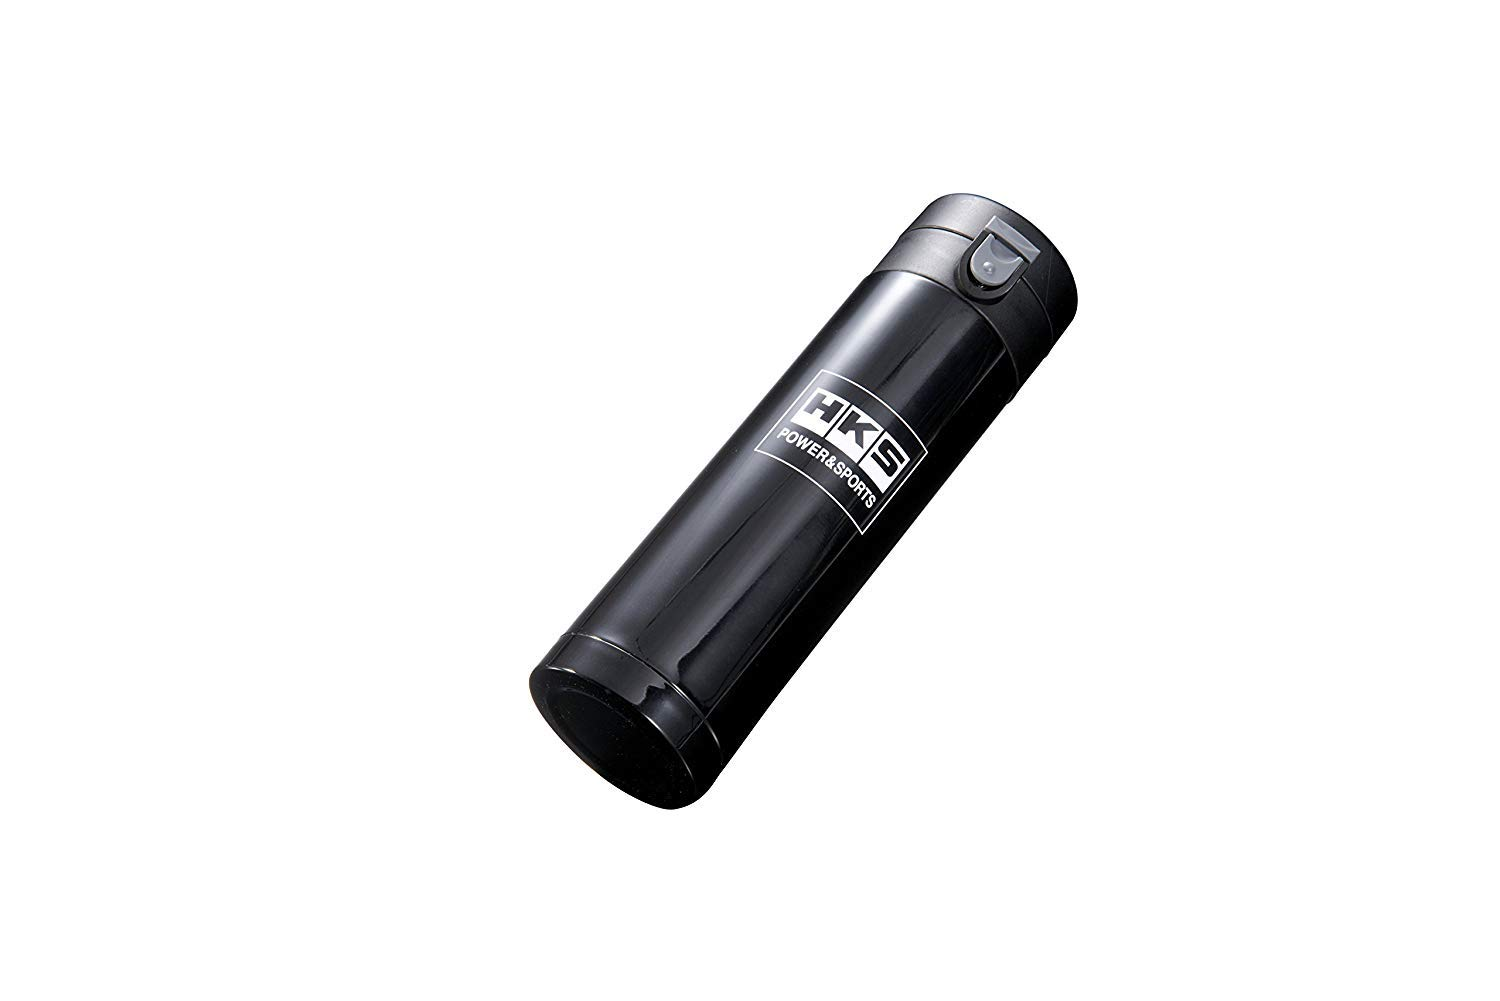 HKS 51007-AK225 Black Stainless Bottle by HKS (Image #1)